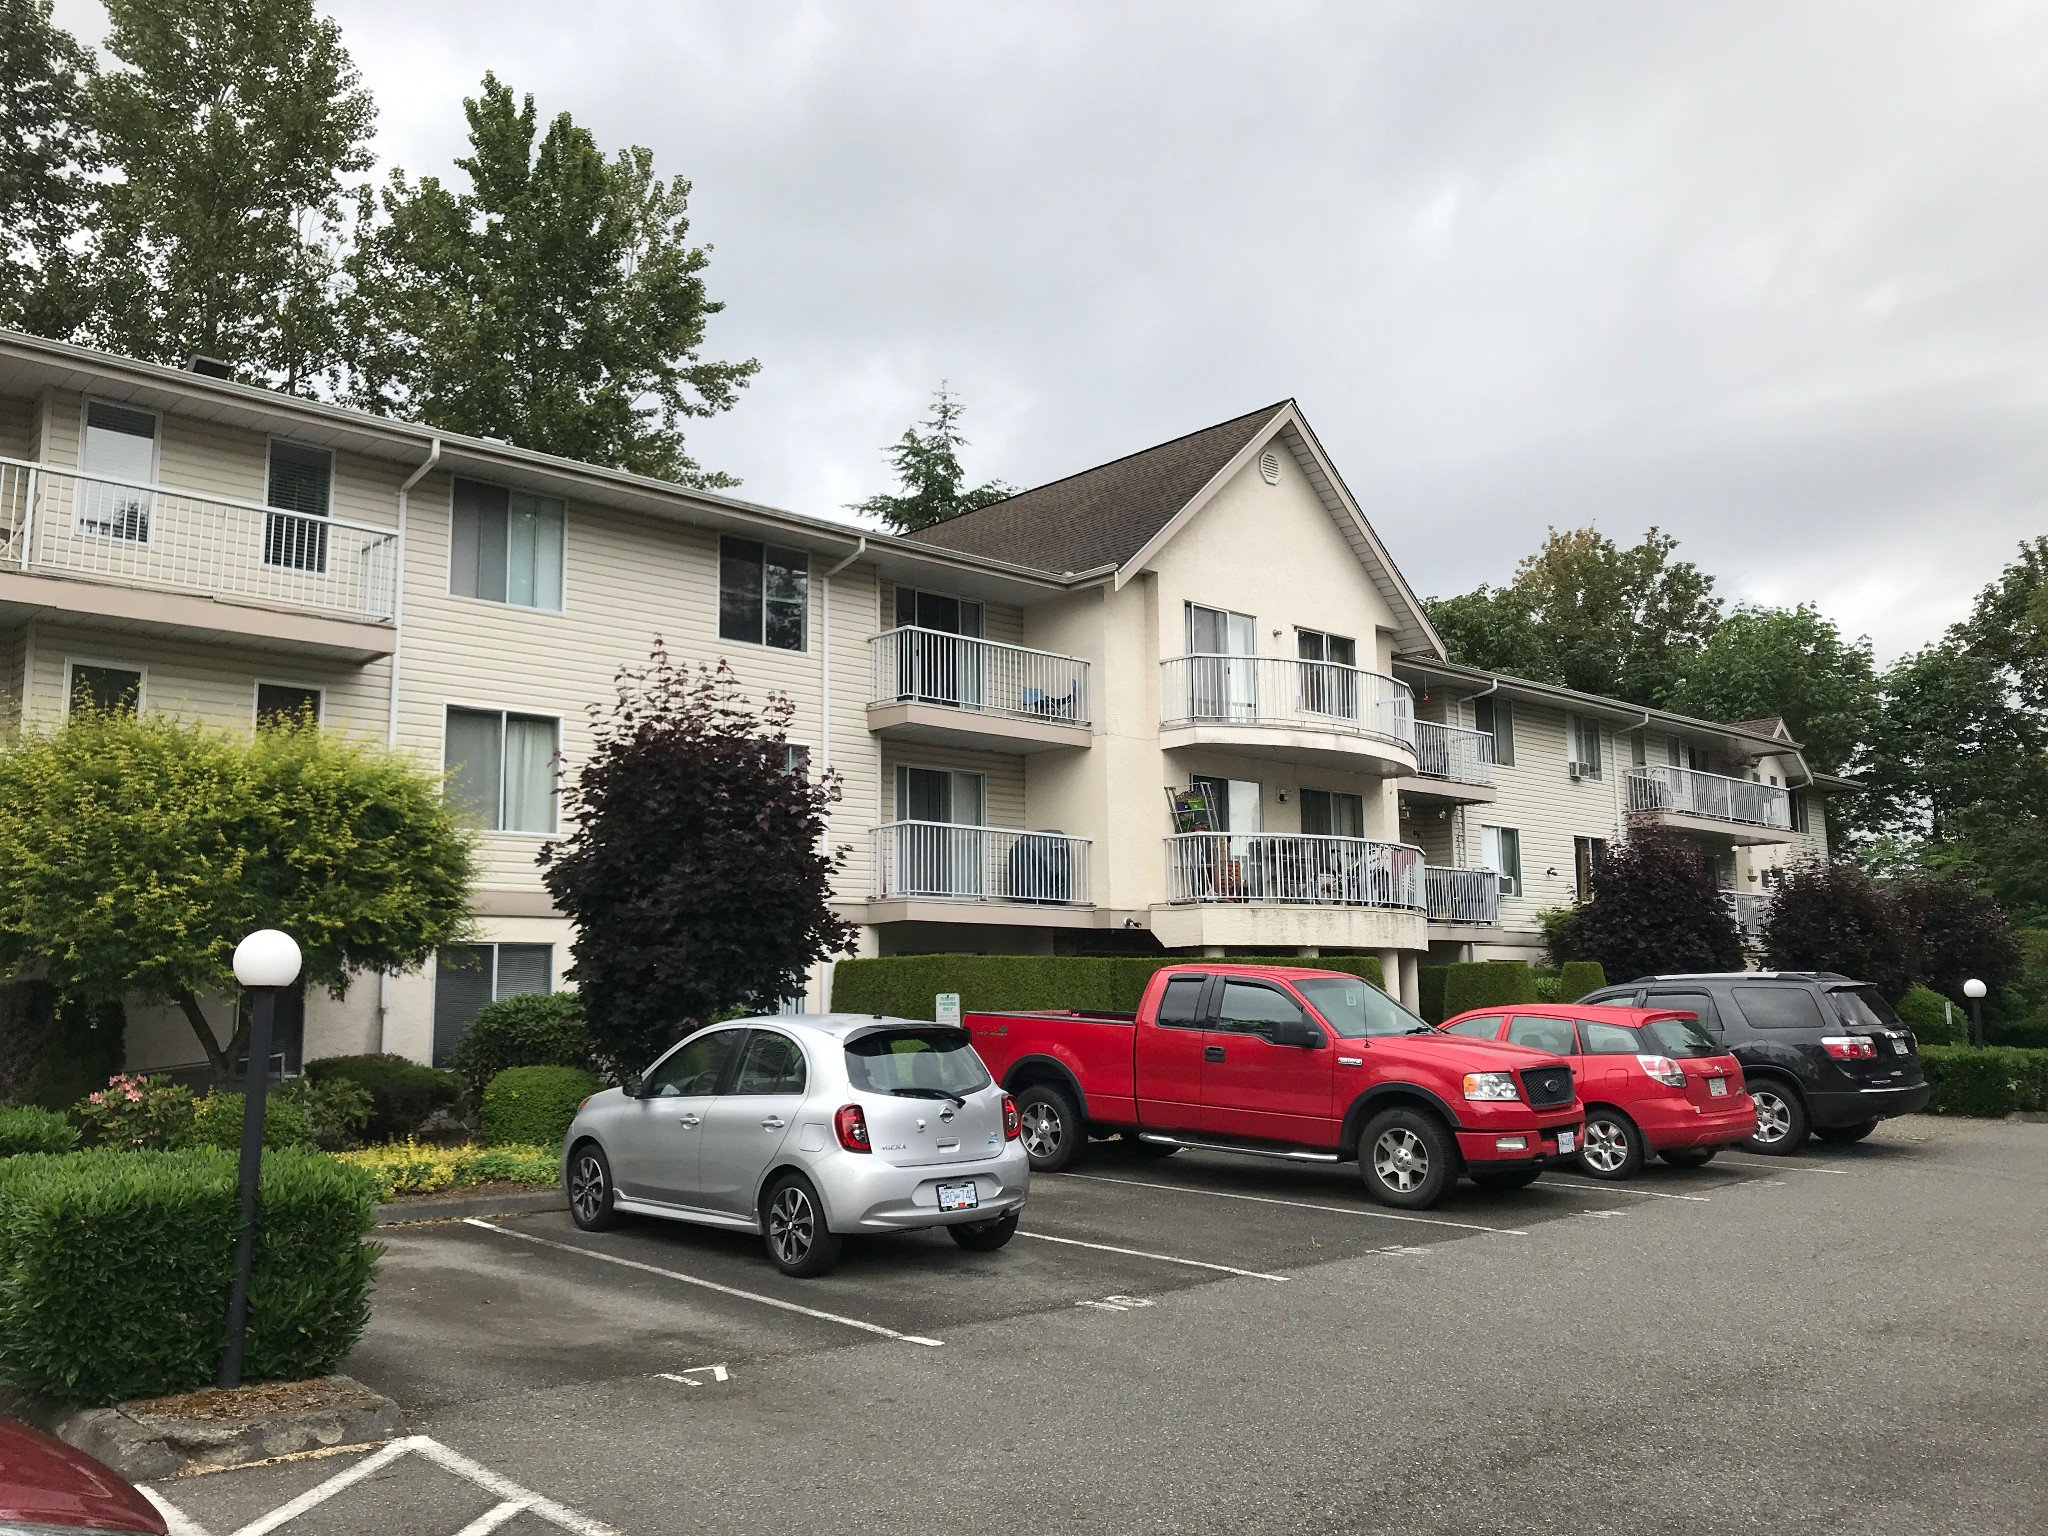 Main Photo: #309 2130 McKenzie Rd. in Abbotsford: Central Abbotsford Condo for rent